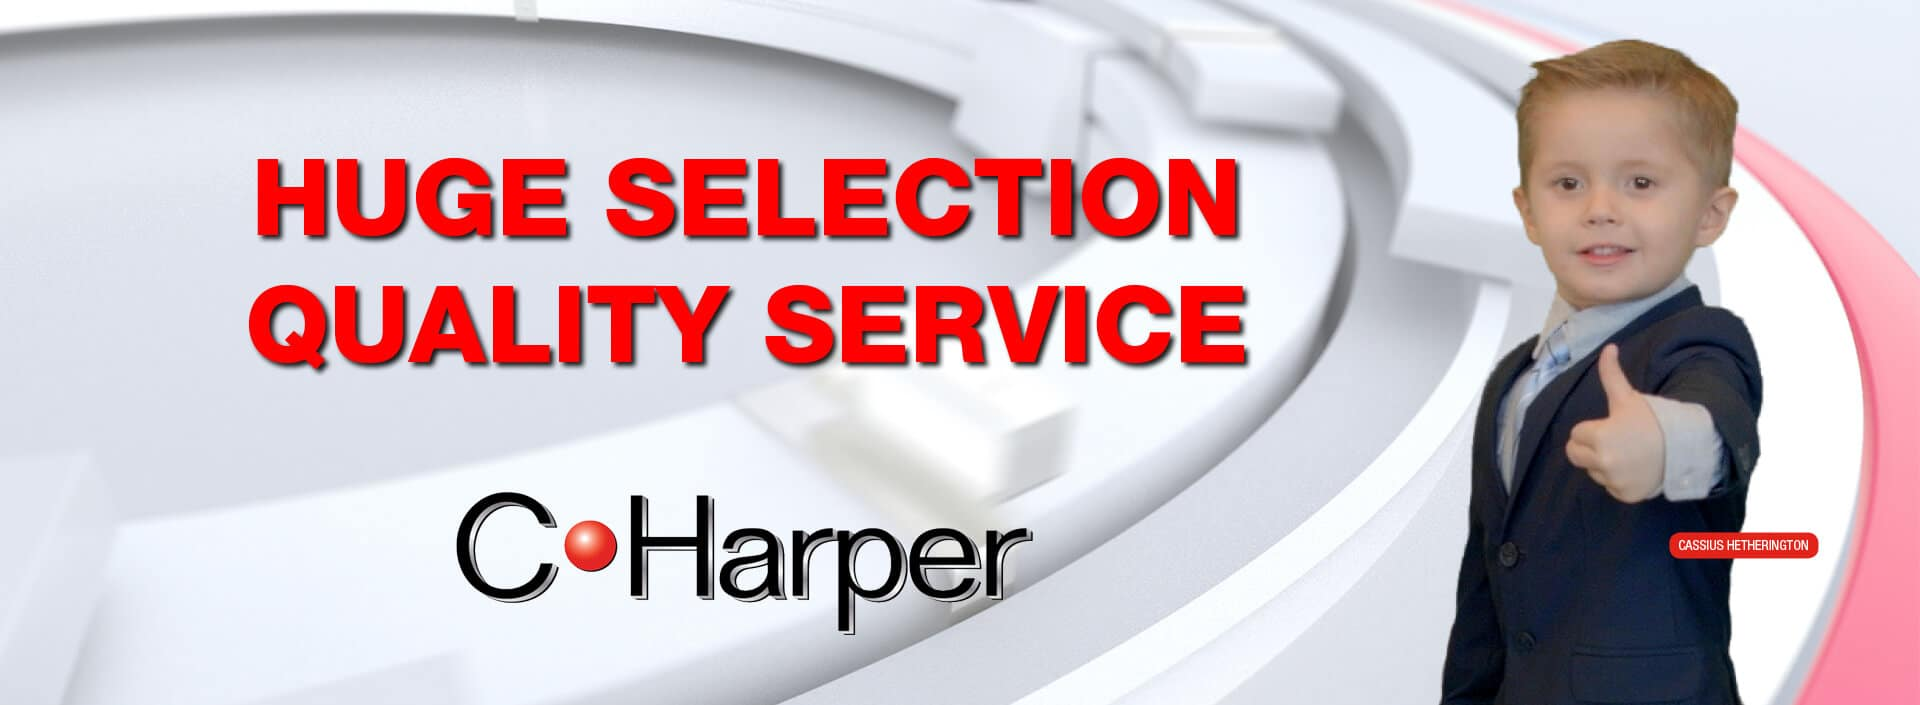 Huge Selection - Quality Service